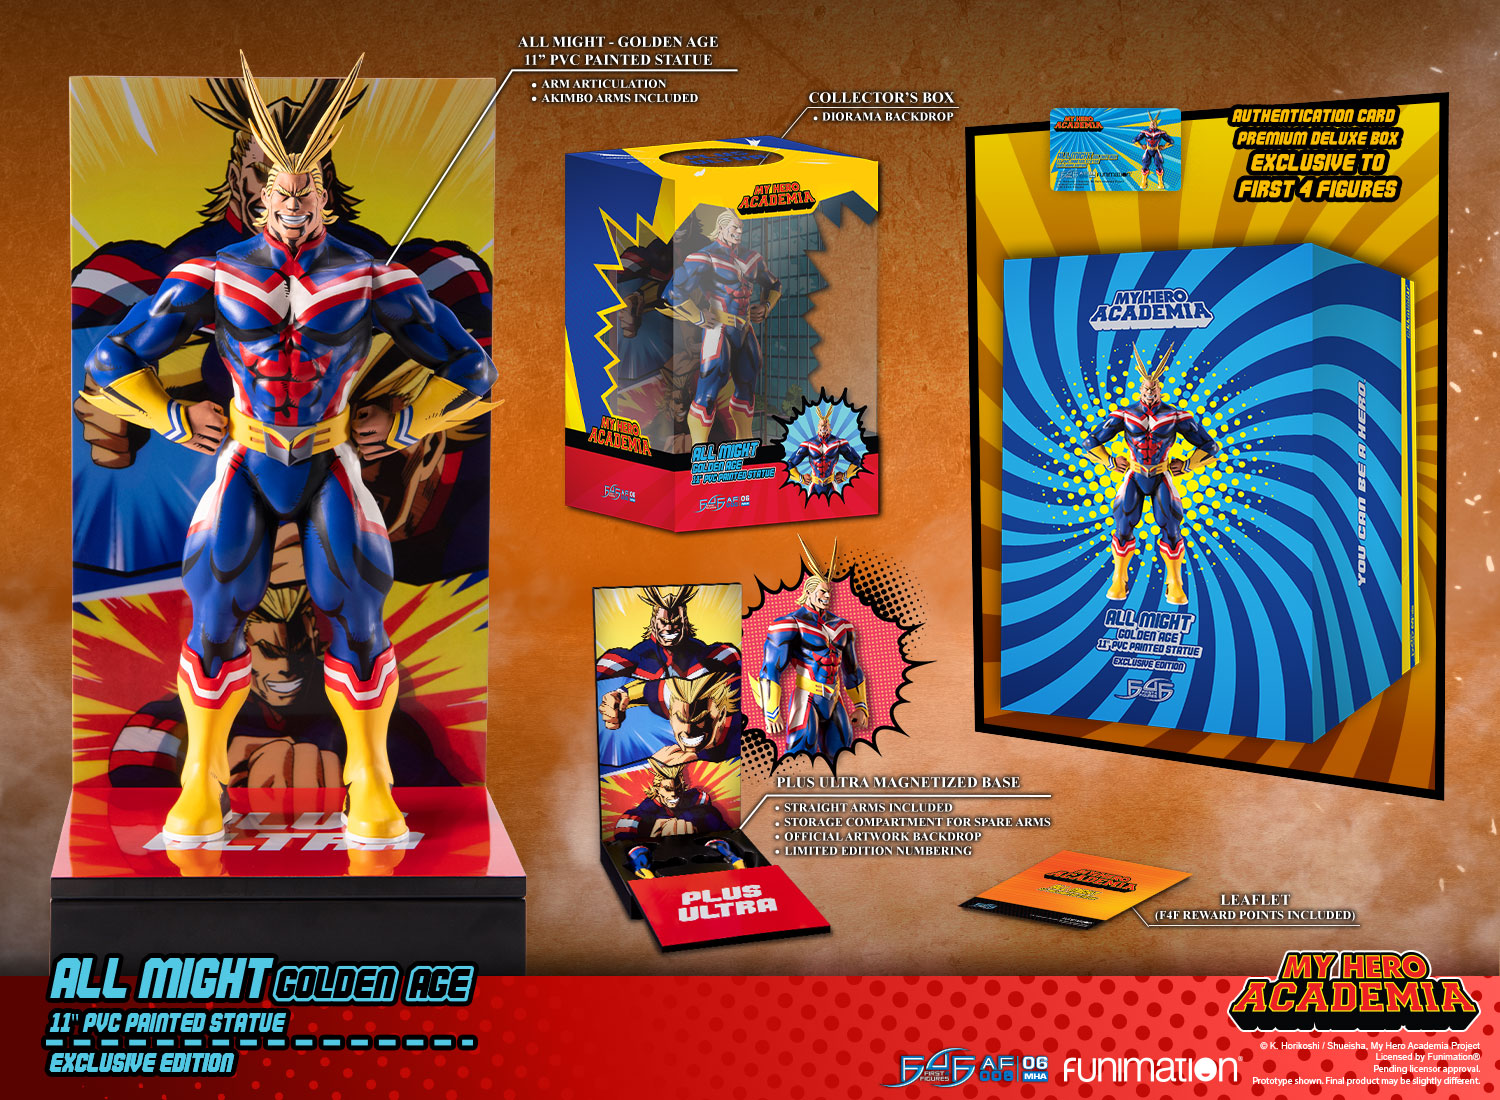 All Might: Golden Age (Exclusive Edition)